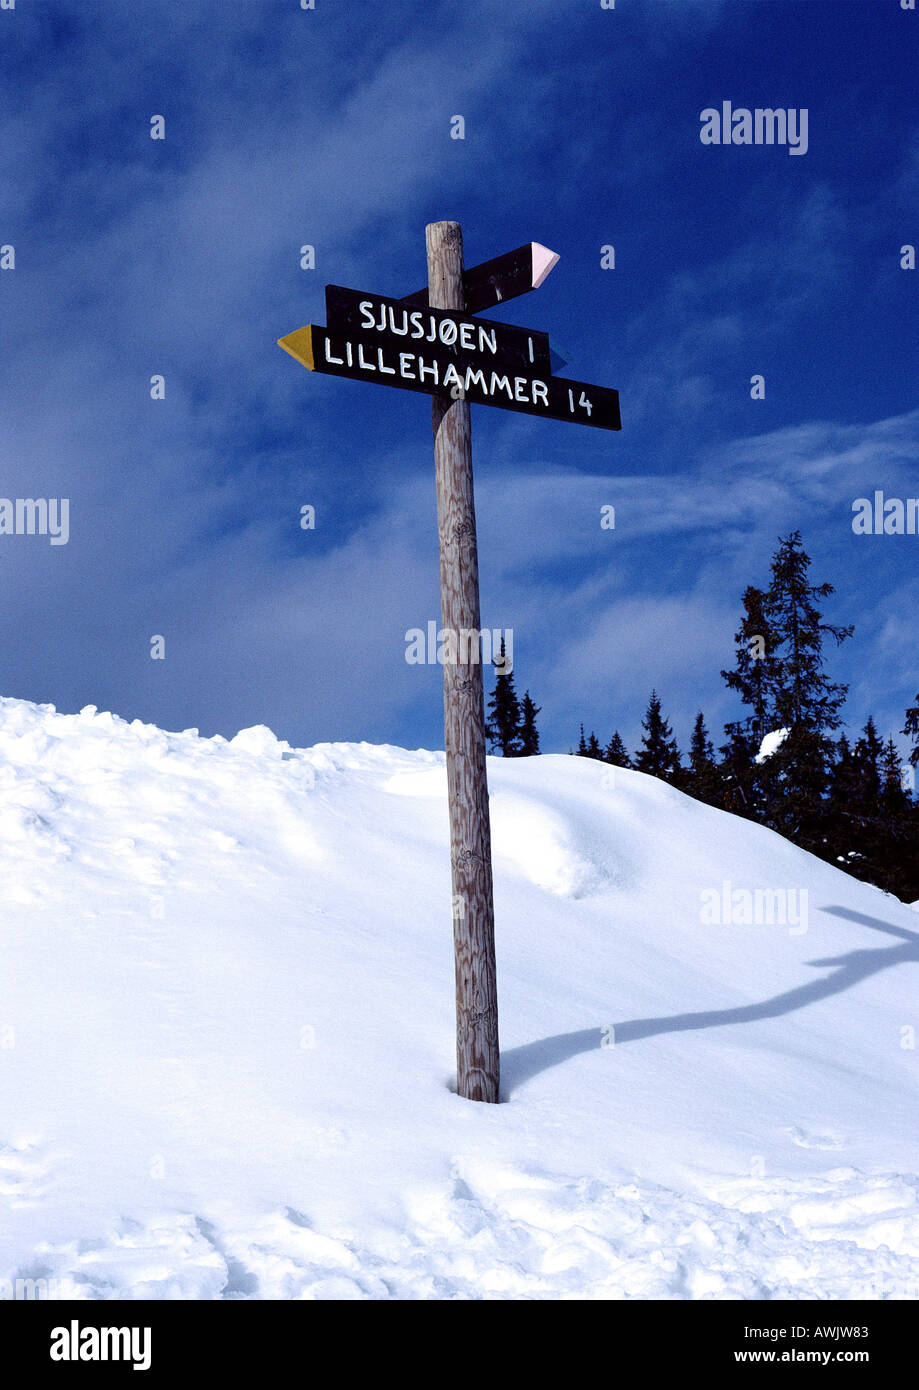 Norway, direction sign in snow - Stock Image